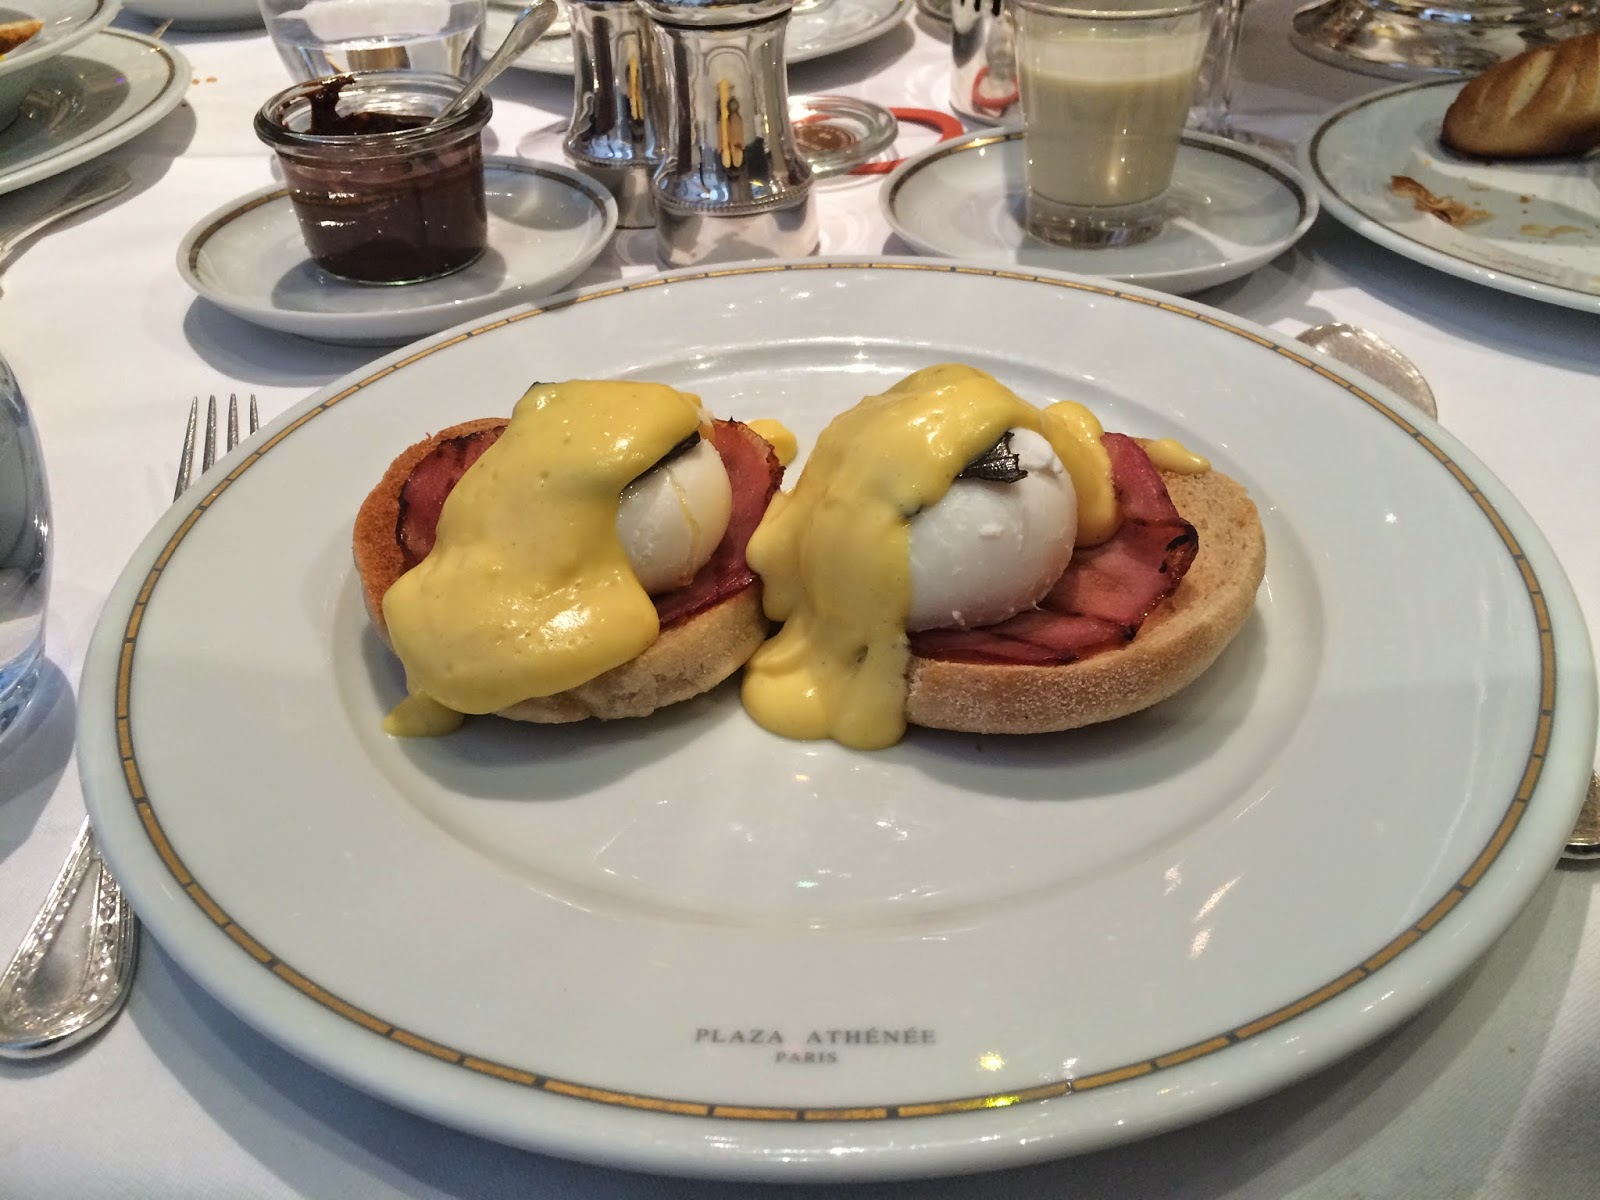 Eggs Benedict at the Haute Couture Brunch, Alain Ducasse au Plaza Athénée, Paris